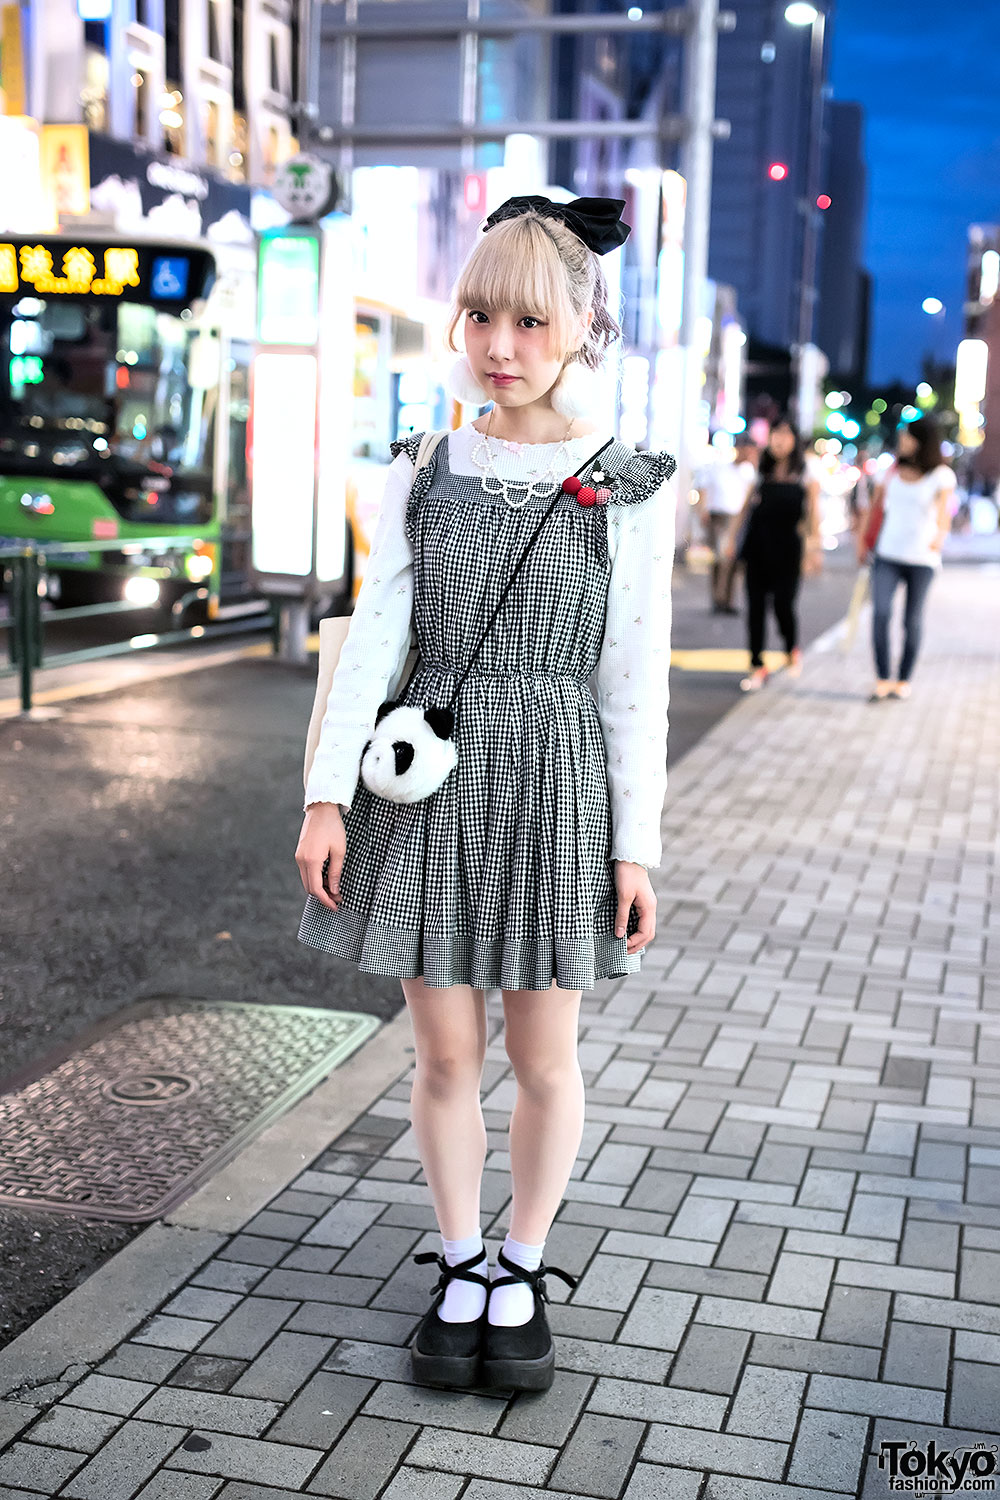 Gingham Dress, Panda Purse, Pom Pom Earrings & Tokyo Bopper in Harajuku